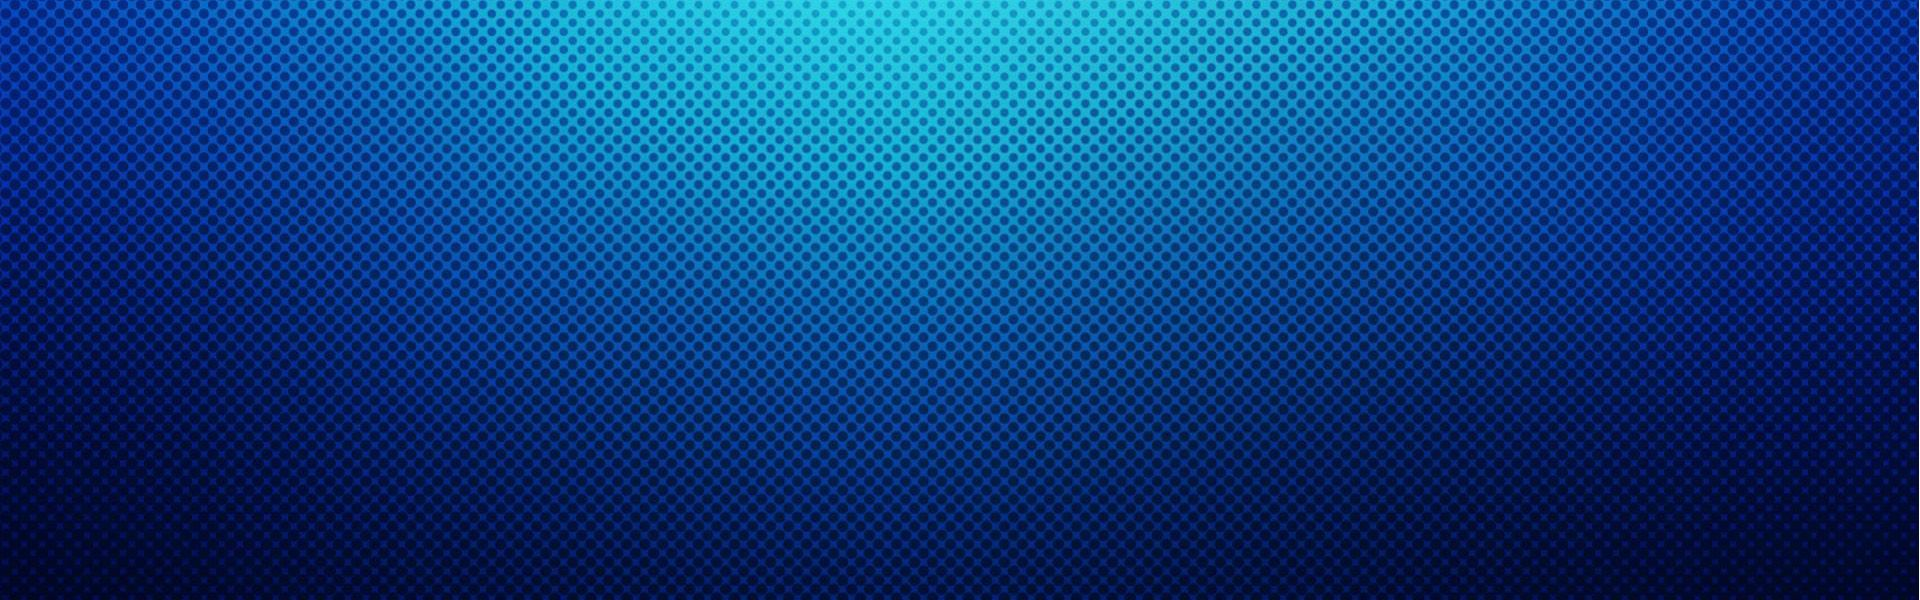 Blue Textured Background Textured background, Grid